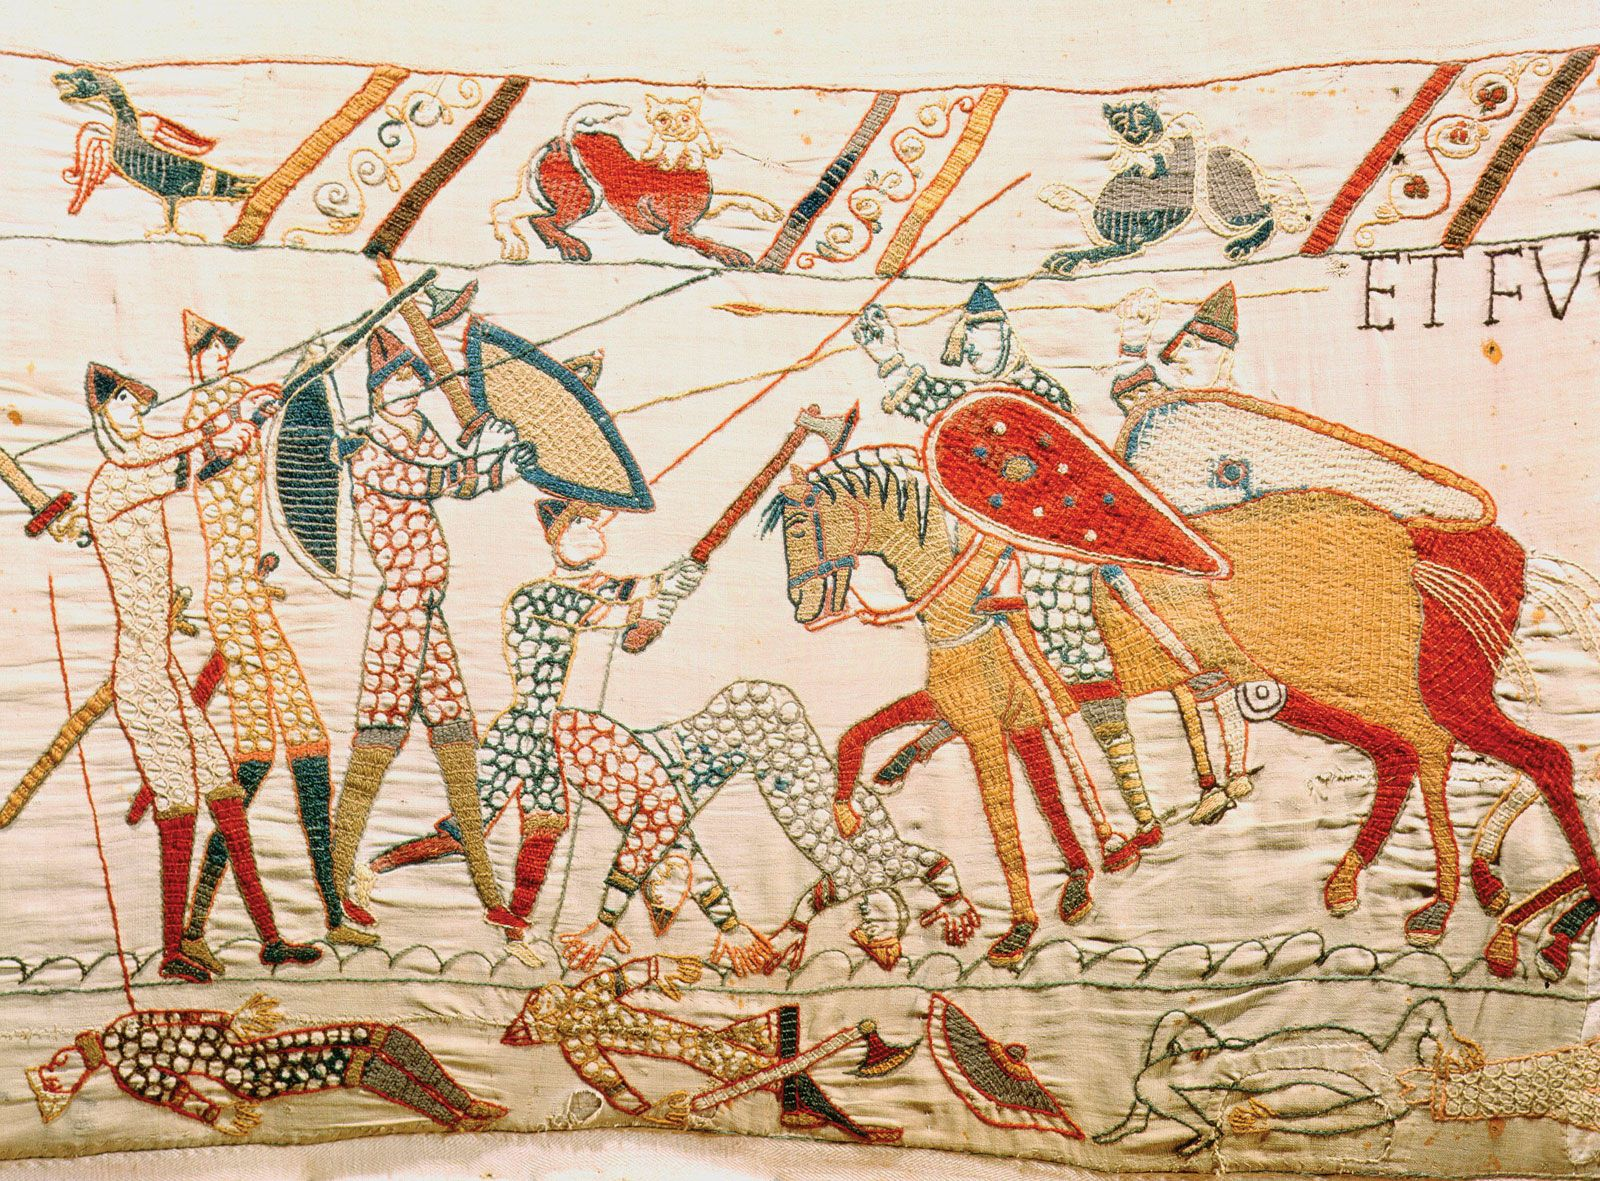 Teppich Von Bayeux Reading Battle Scene Bayeux Tapestry The Bayeux Tapestry Depicts The